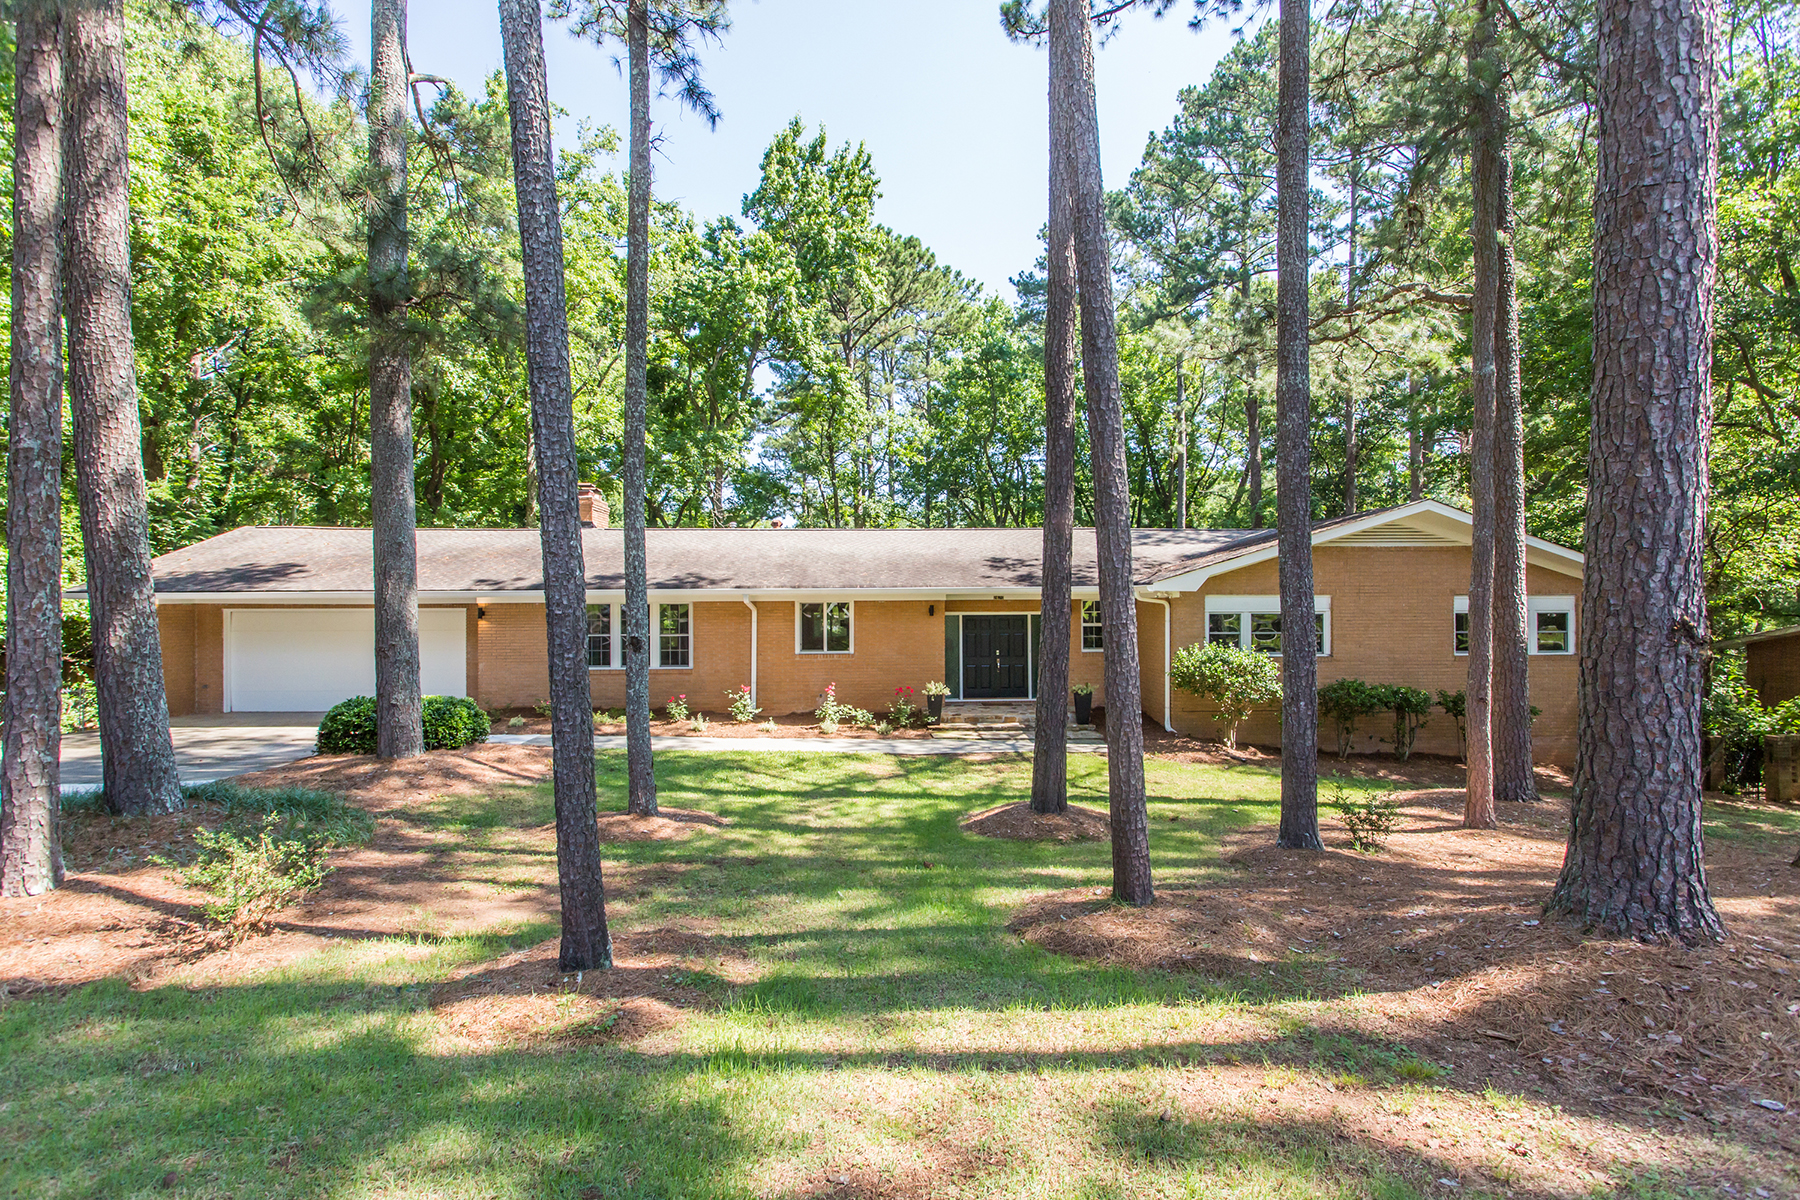 Single Family Home for Sale at Gorgeous Mid-Century Modern Brick Ranch With A Full Finished Basement! 2670 Glenvalley Dr Decatur, Georgia 30032 United States